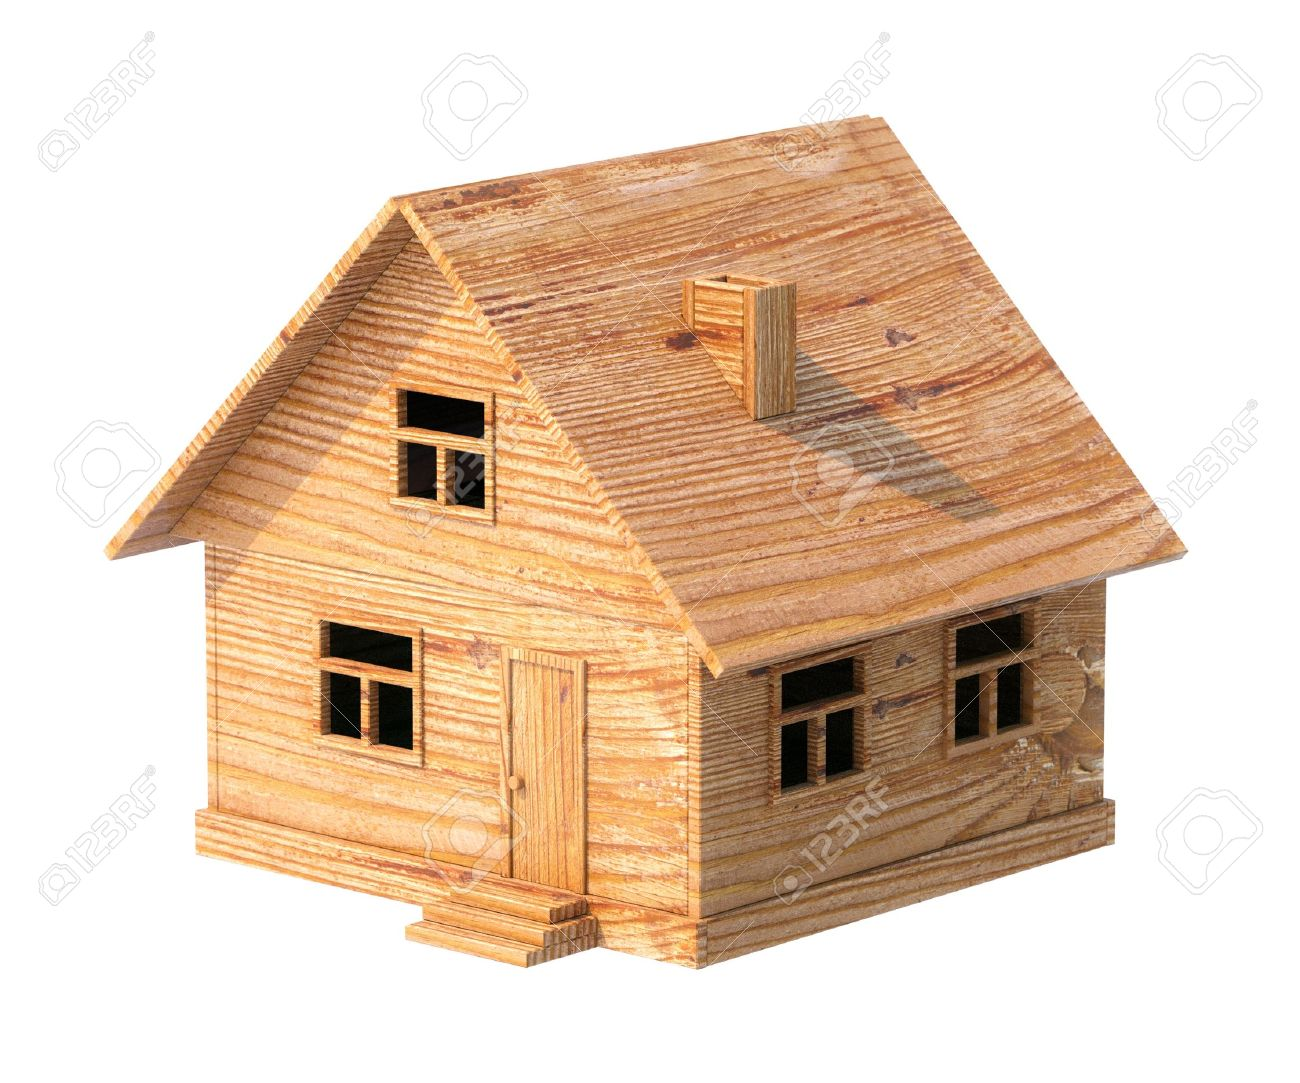 House Made Out Of Wood Toy House Made Of Plywood Isolated On White Stock Photo Picture